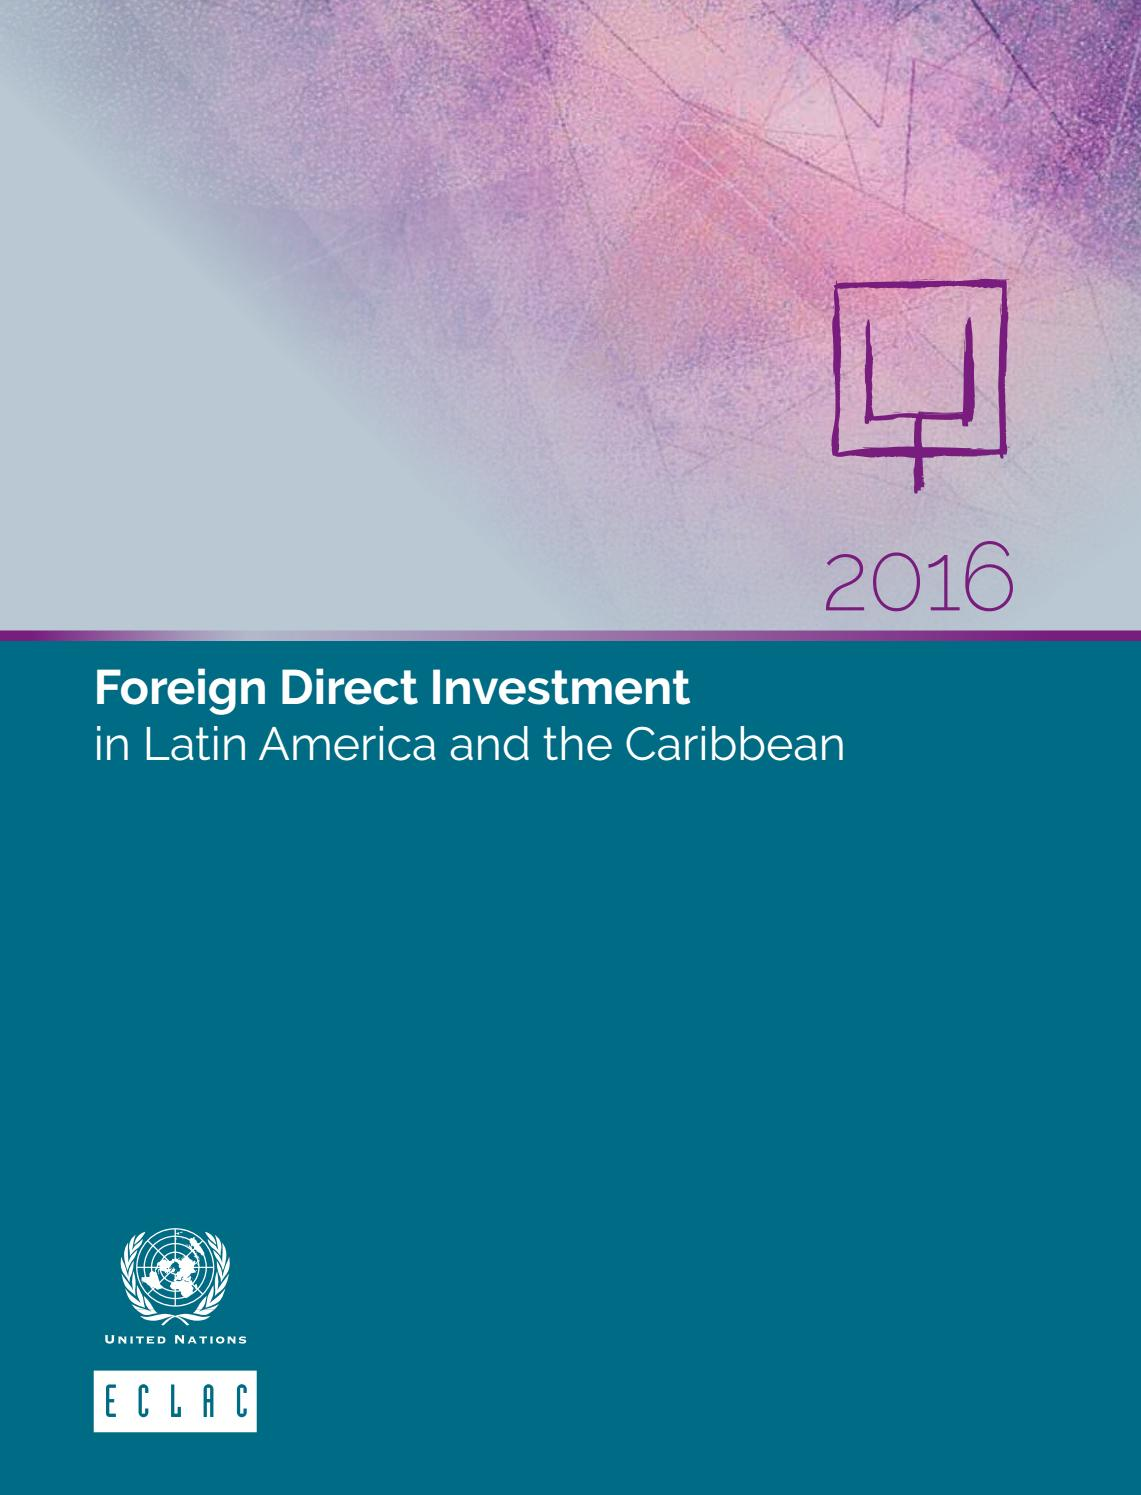 Unctad incentives and foreign direct investment 1996 dodge gmrt ncra tifr res investments